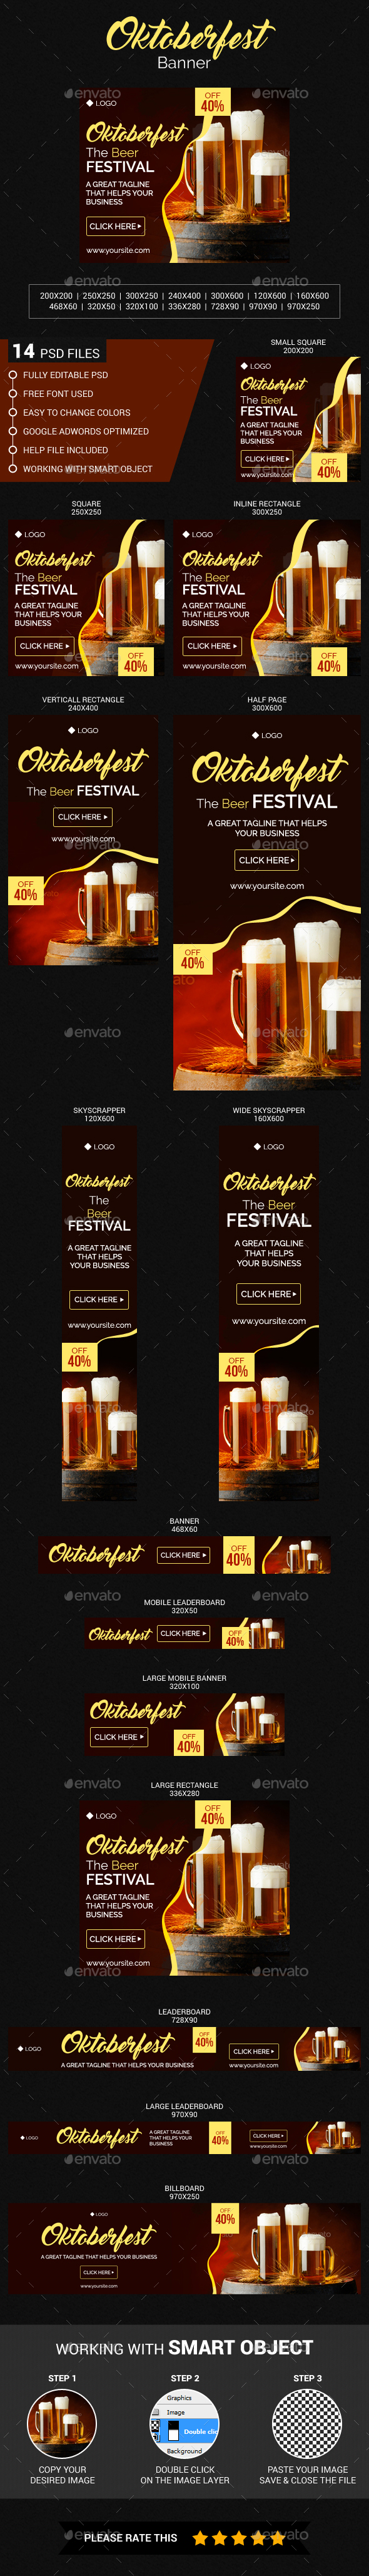 Oktoberfest Banner - Banners & Ads Web Elements